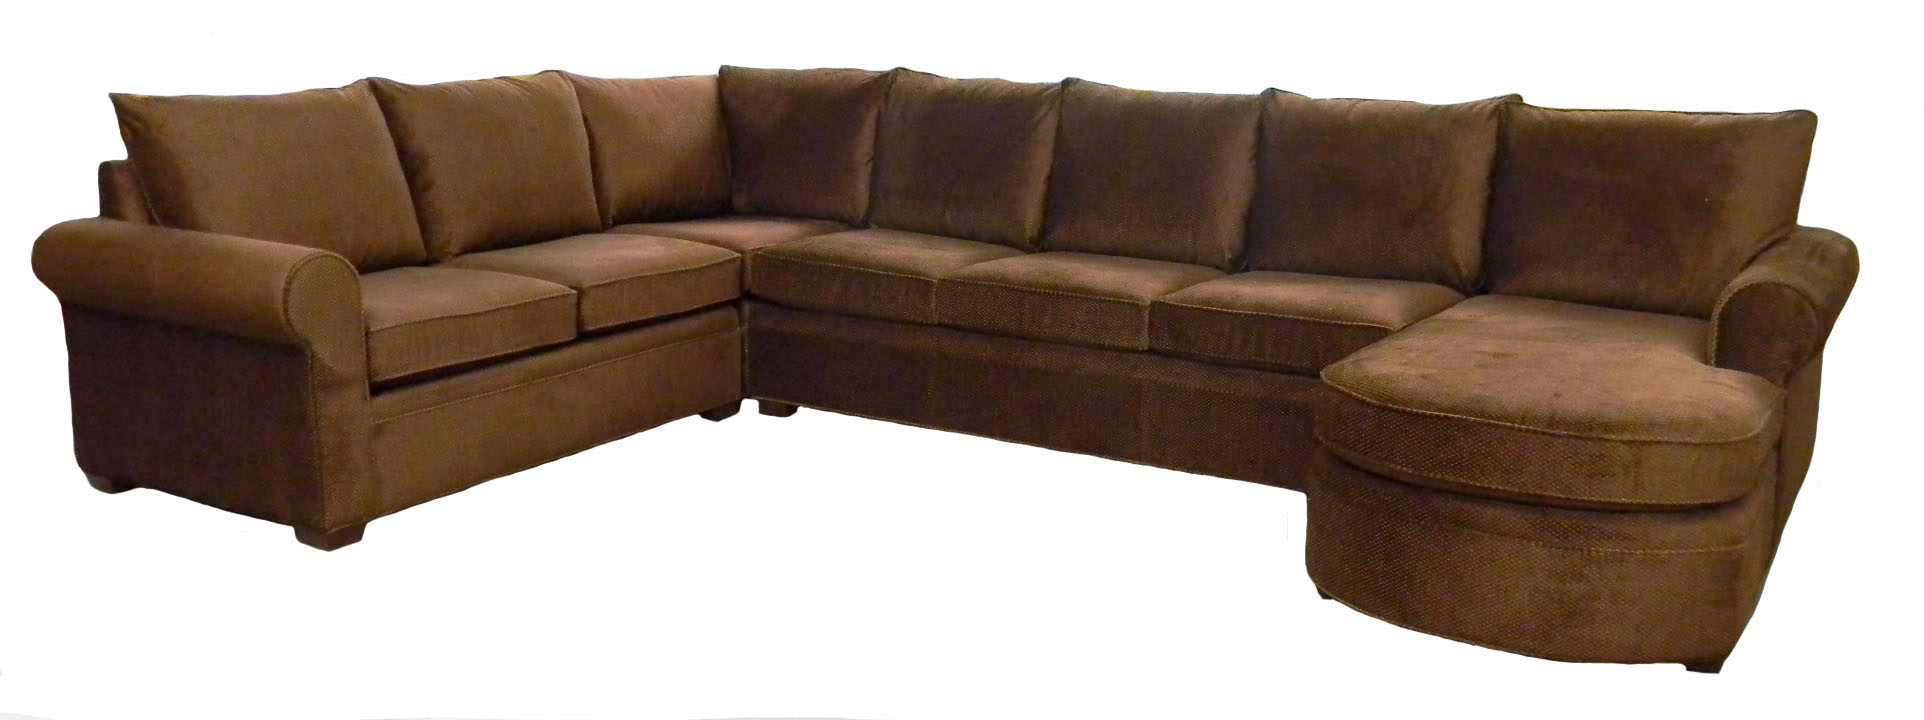 Photos Examples Custom Sectional Sofas Carolina Chair